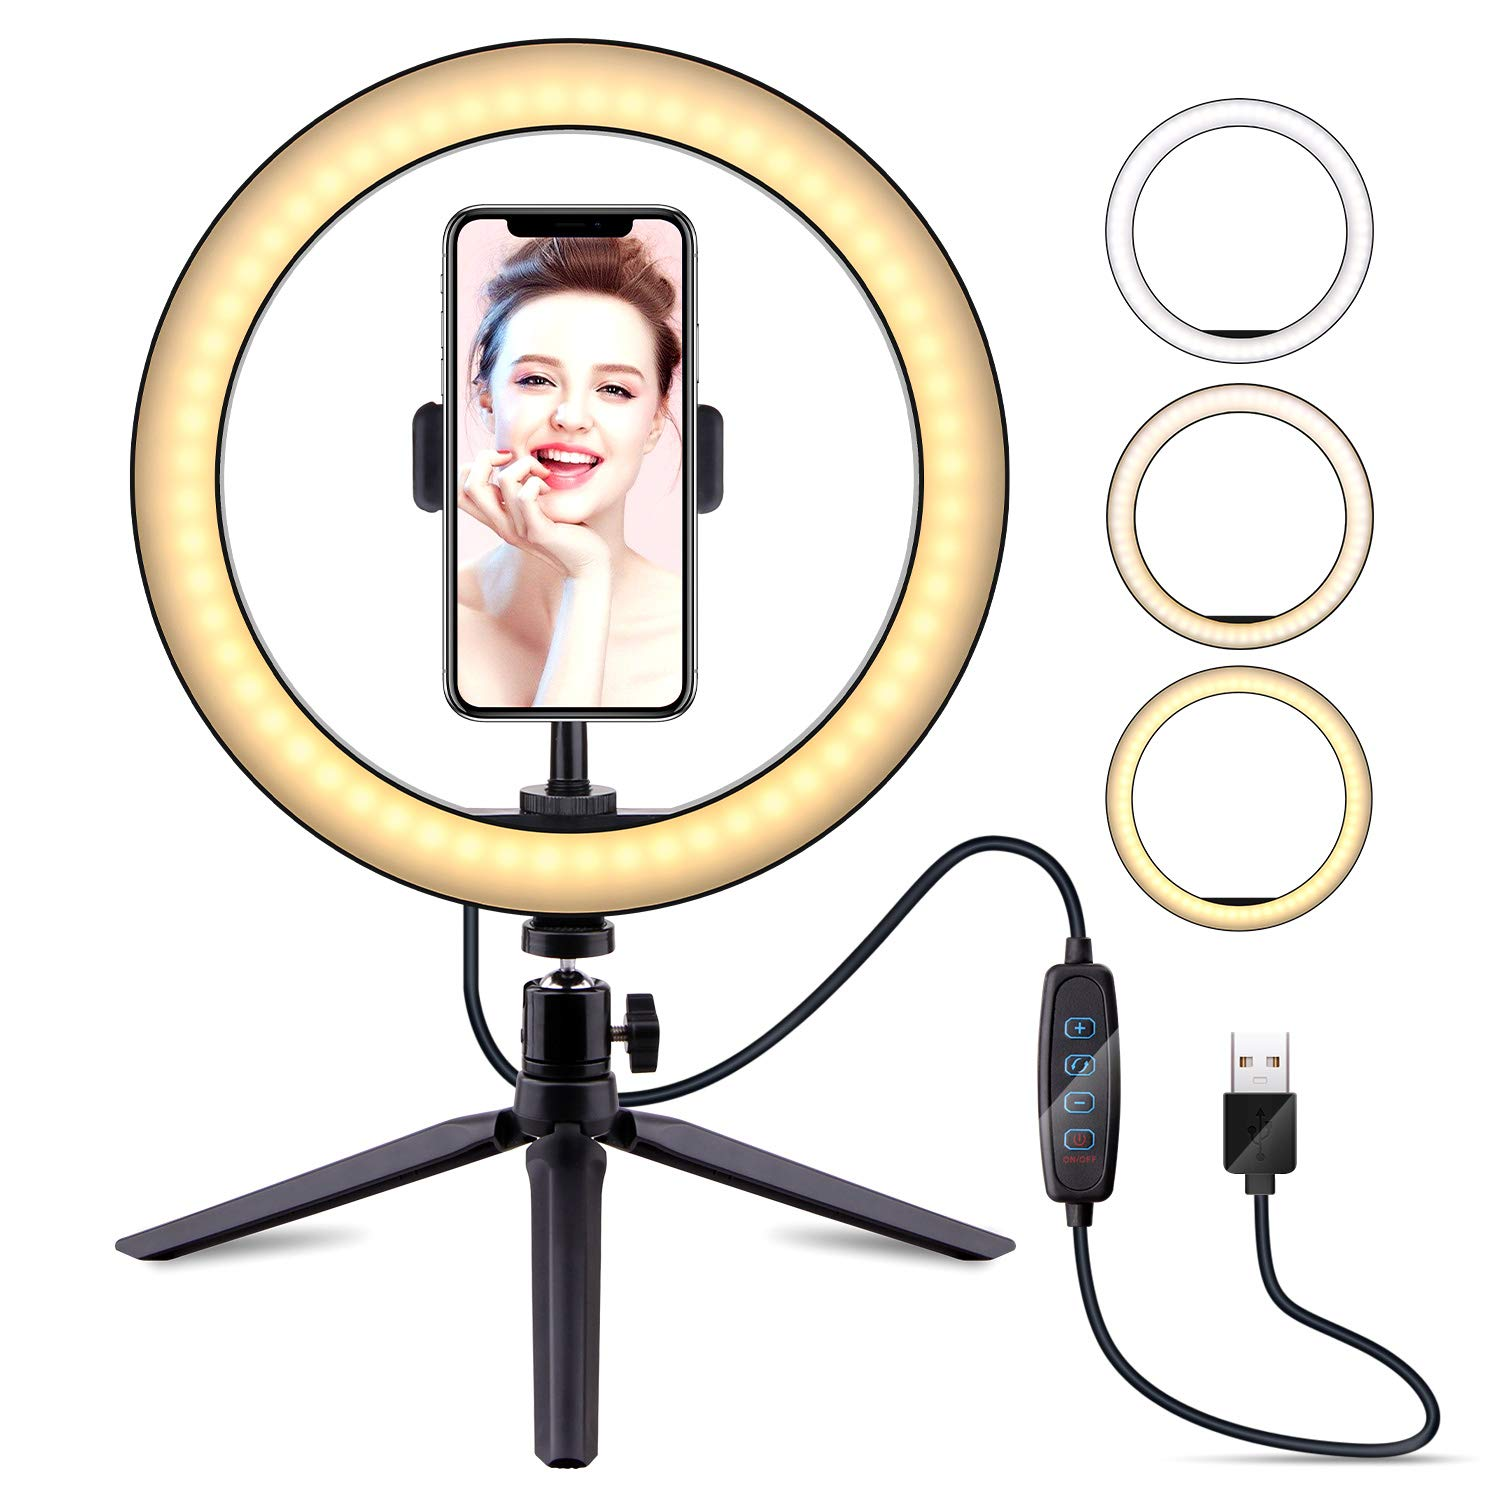 10'' Selfie Ring Light with Tripod Stand & Cell Phone Holder, LATZZ Dimmable Desktop LED Lamp Camera Ringlight for Live Stream/Makeup/YouTube Video/Photography